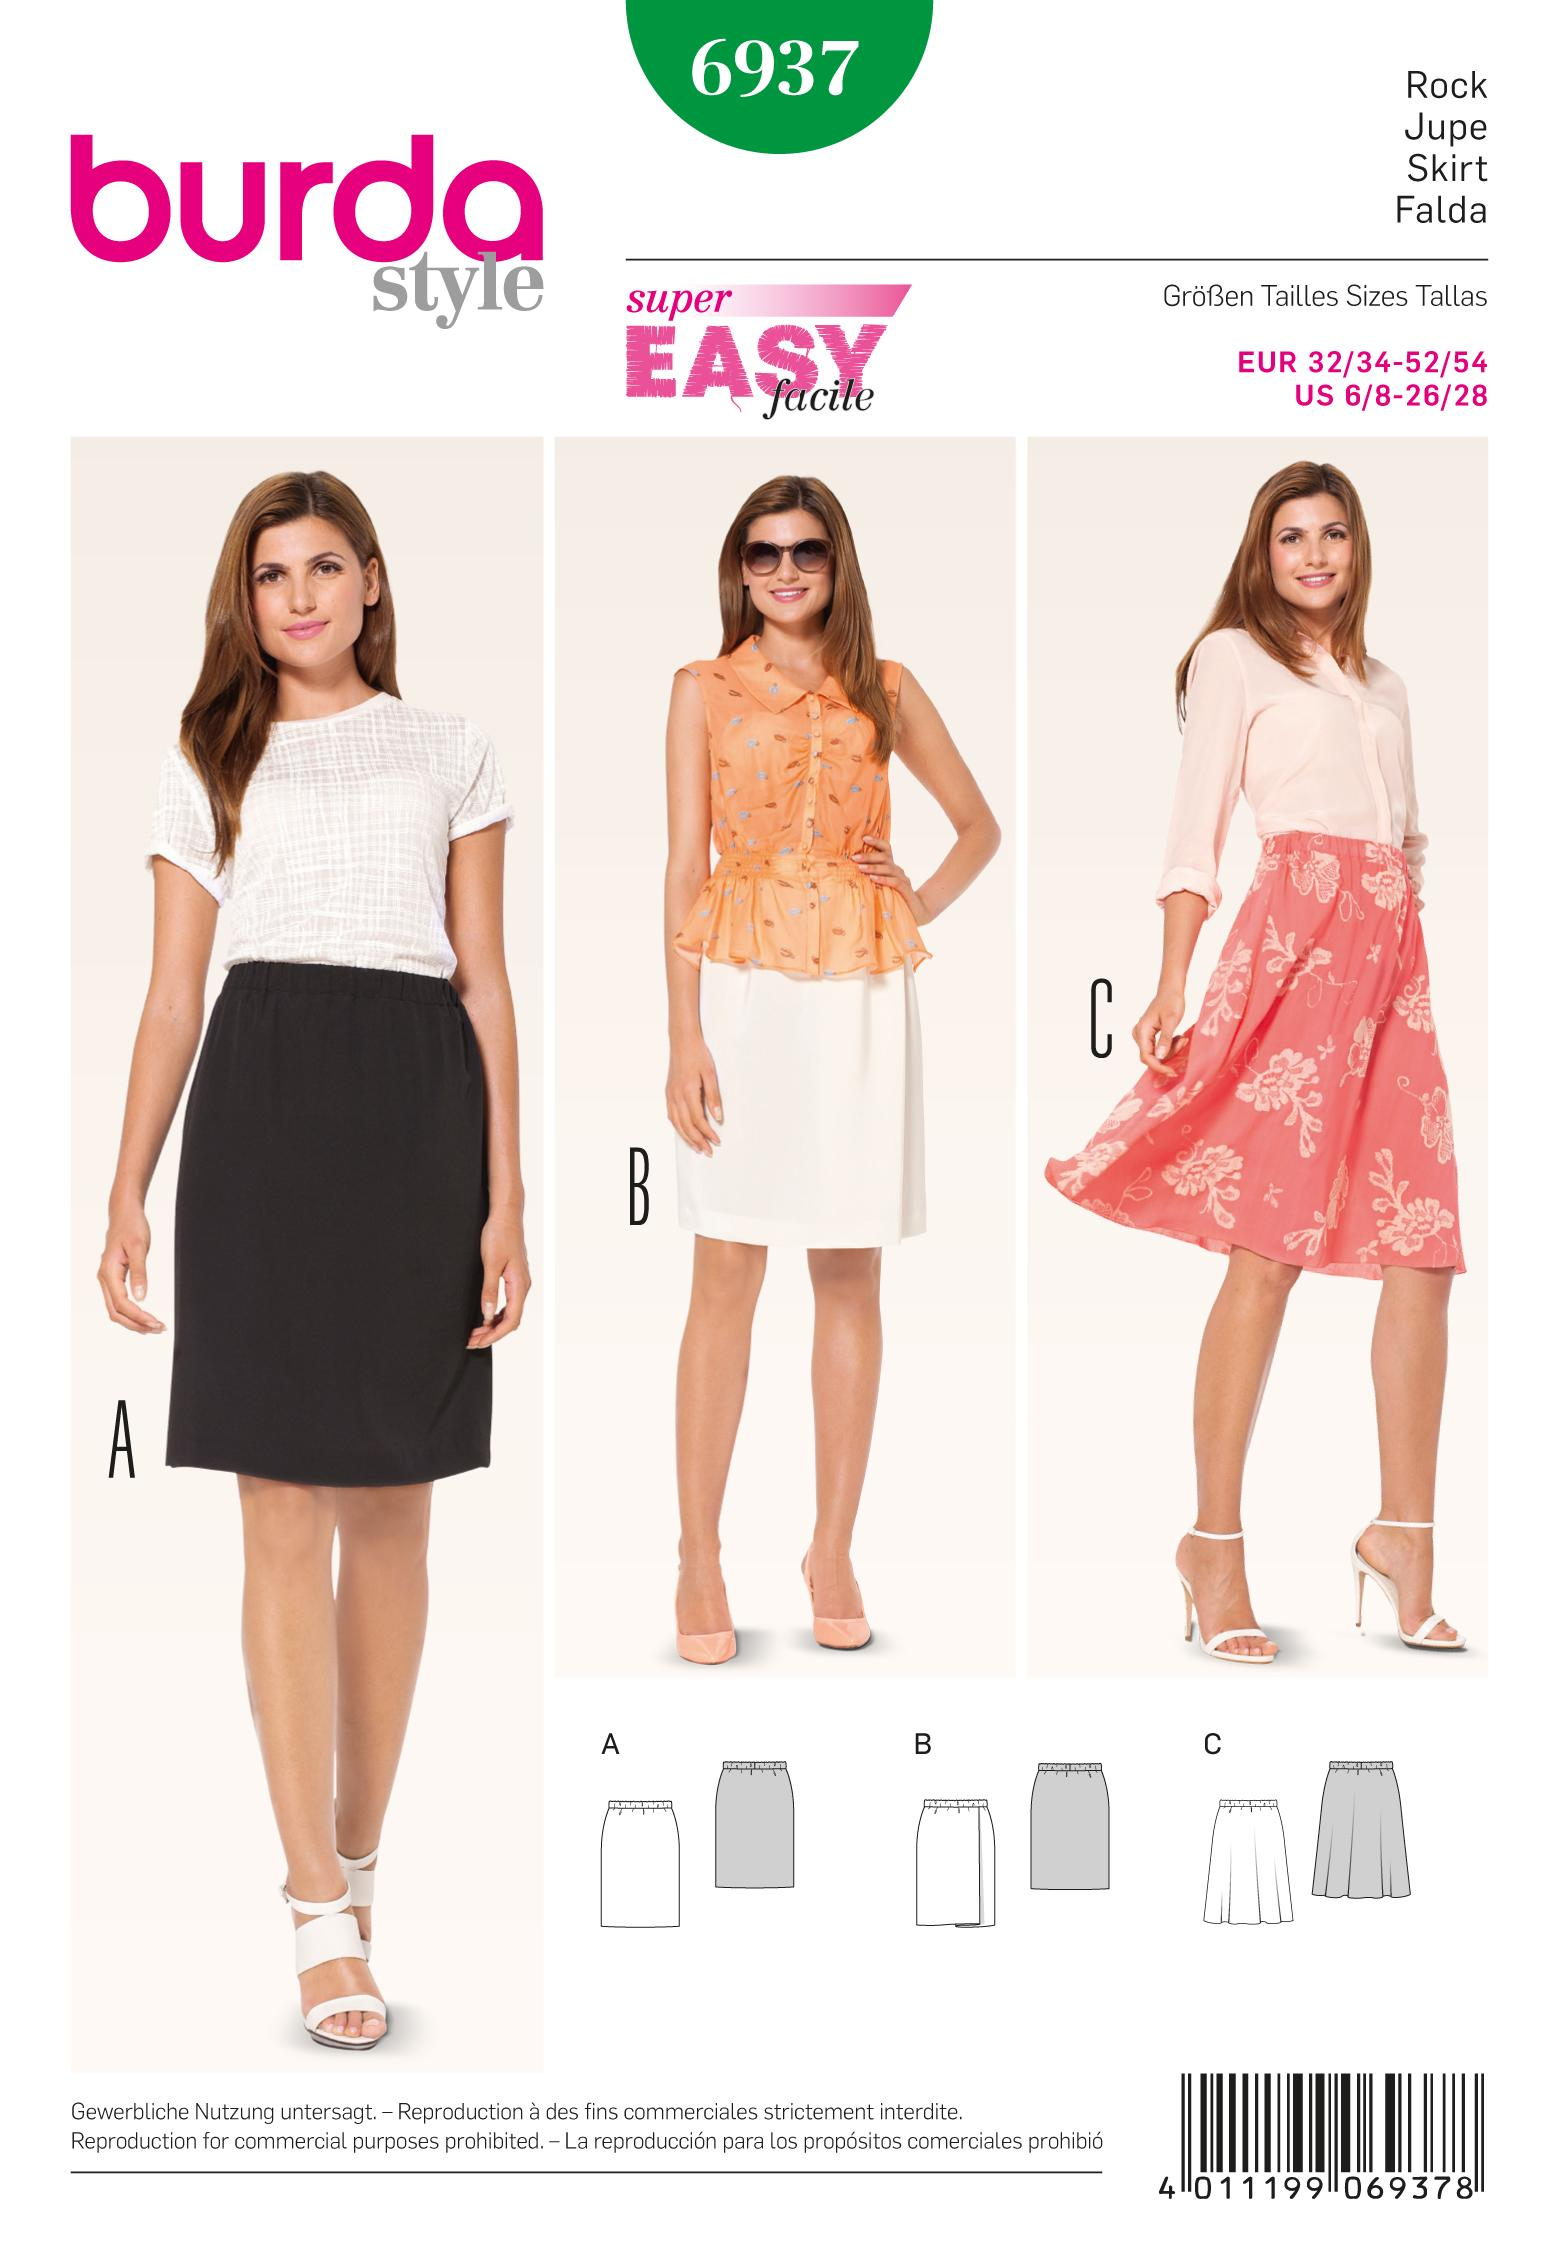 Burda B6937 Burda Skirts Sewing Pattern